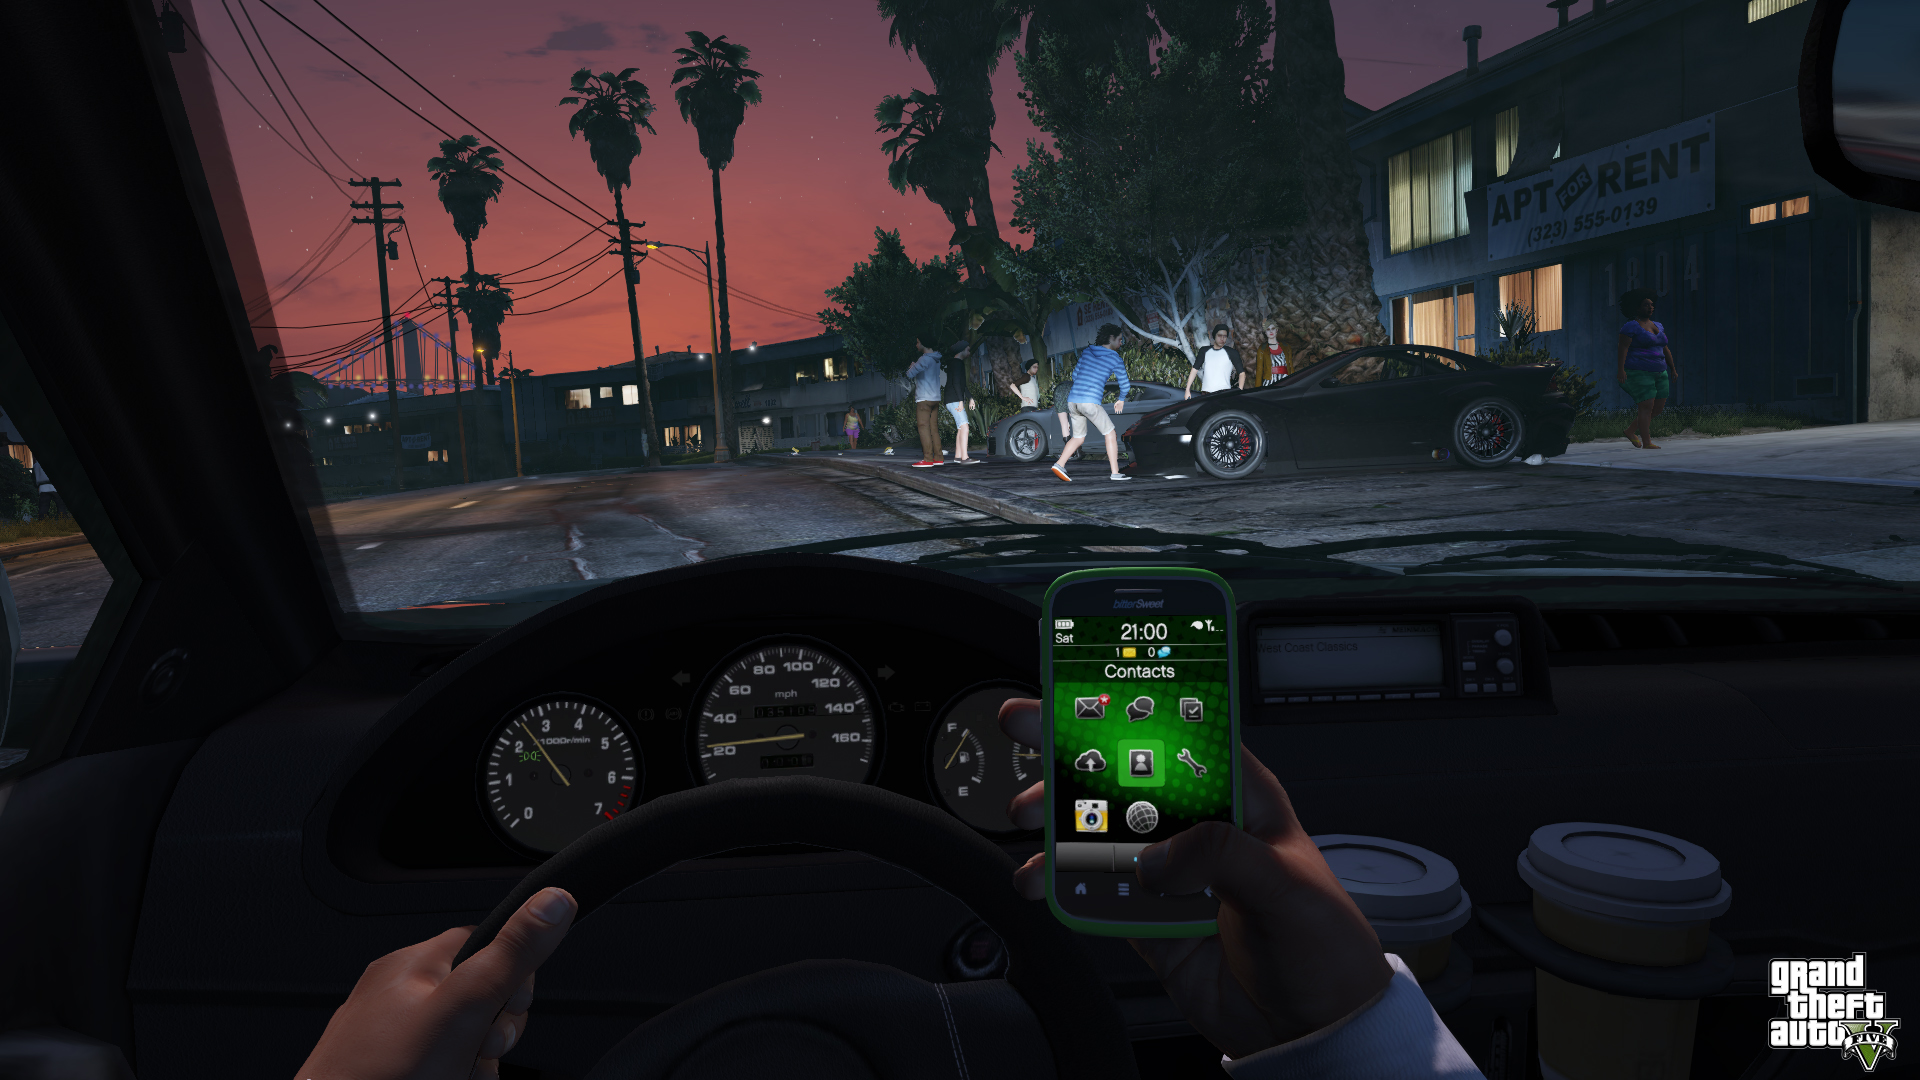 GTA V 5 PS4 Xbox One Cdigos Manhas Cheats Truques E Dicas Your Games Zone